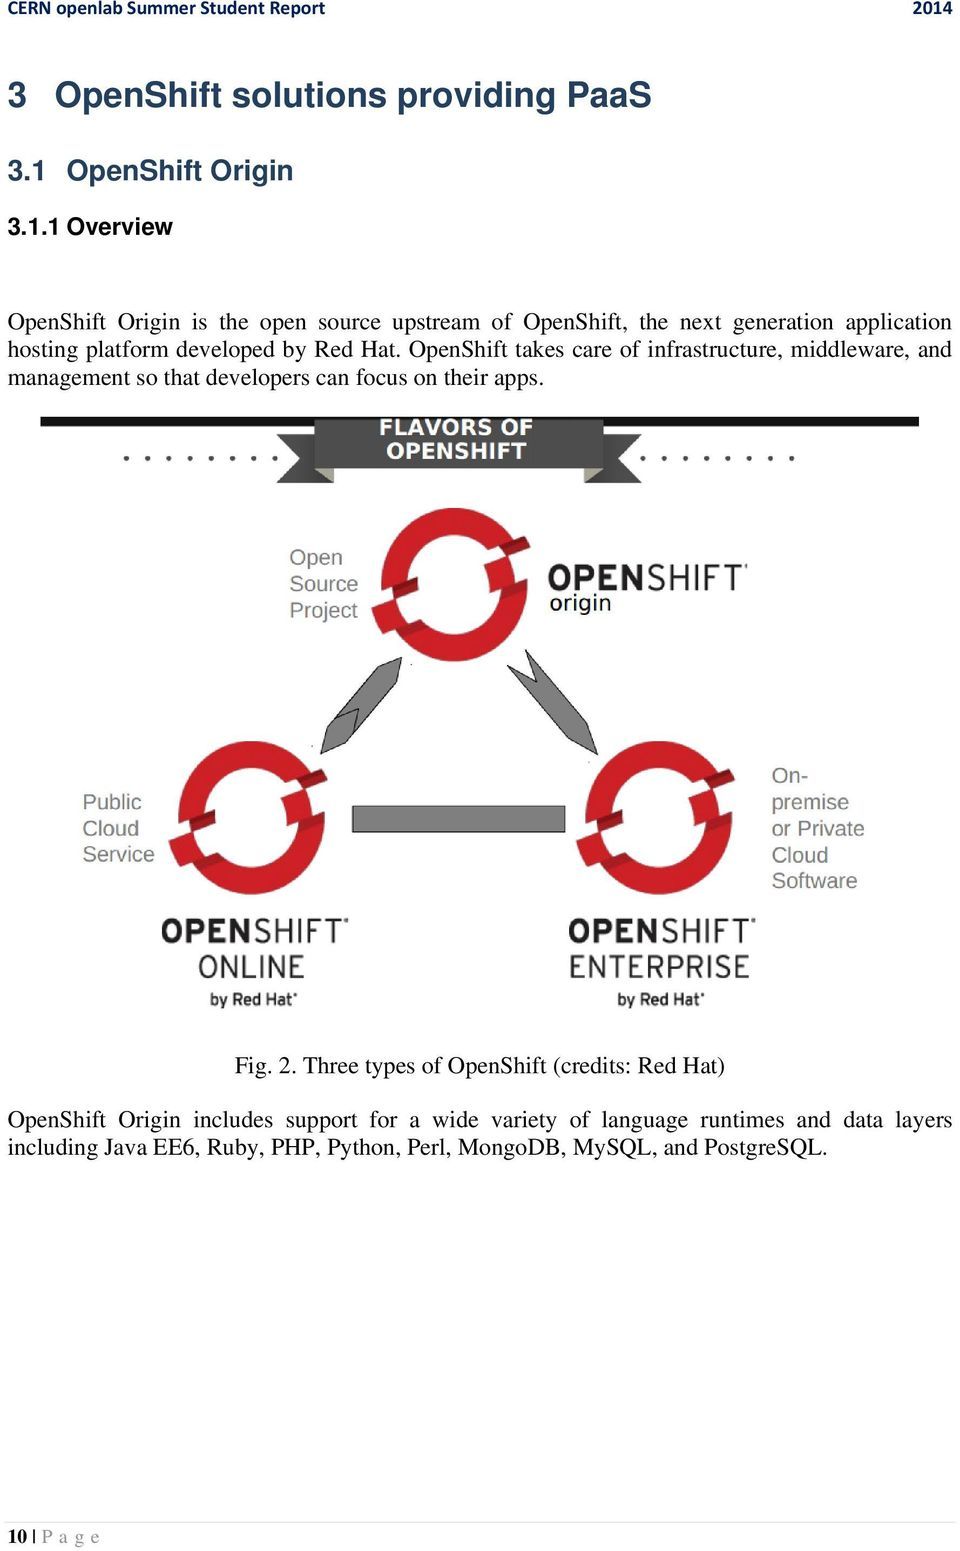 1 Overview OpenShift Origin is the open source upstream of OpenShift, the next generation application hosting platform developed by Red